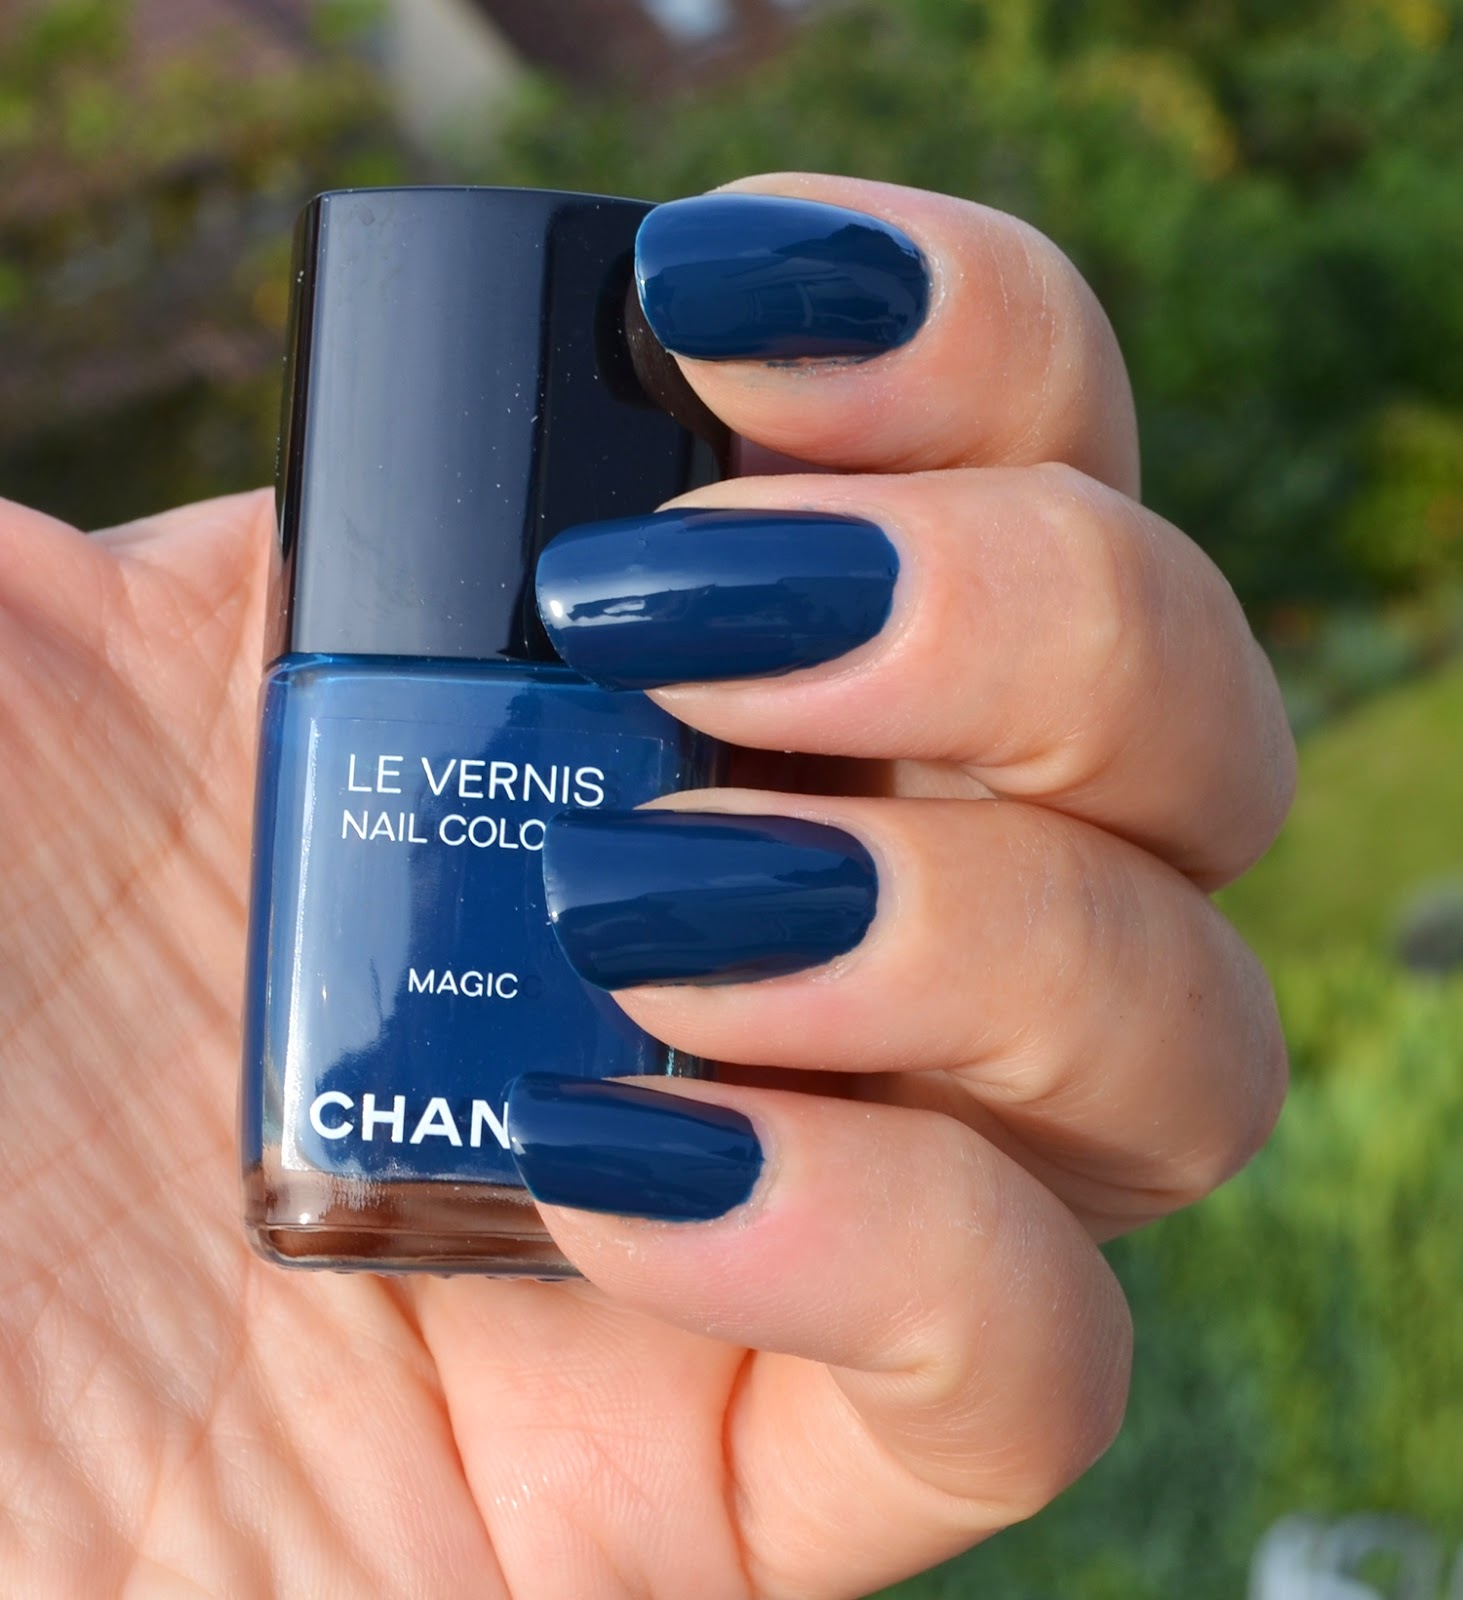 Chanel Le Vernis Cosmic & Magic, Vogue Fashion Night Out 2013 Nail ...